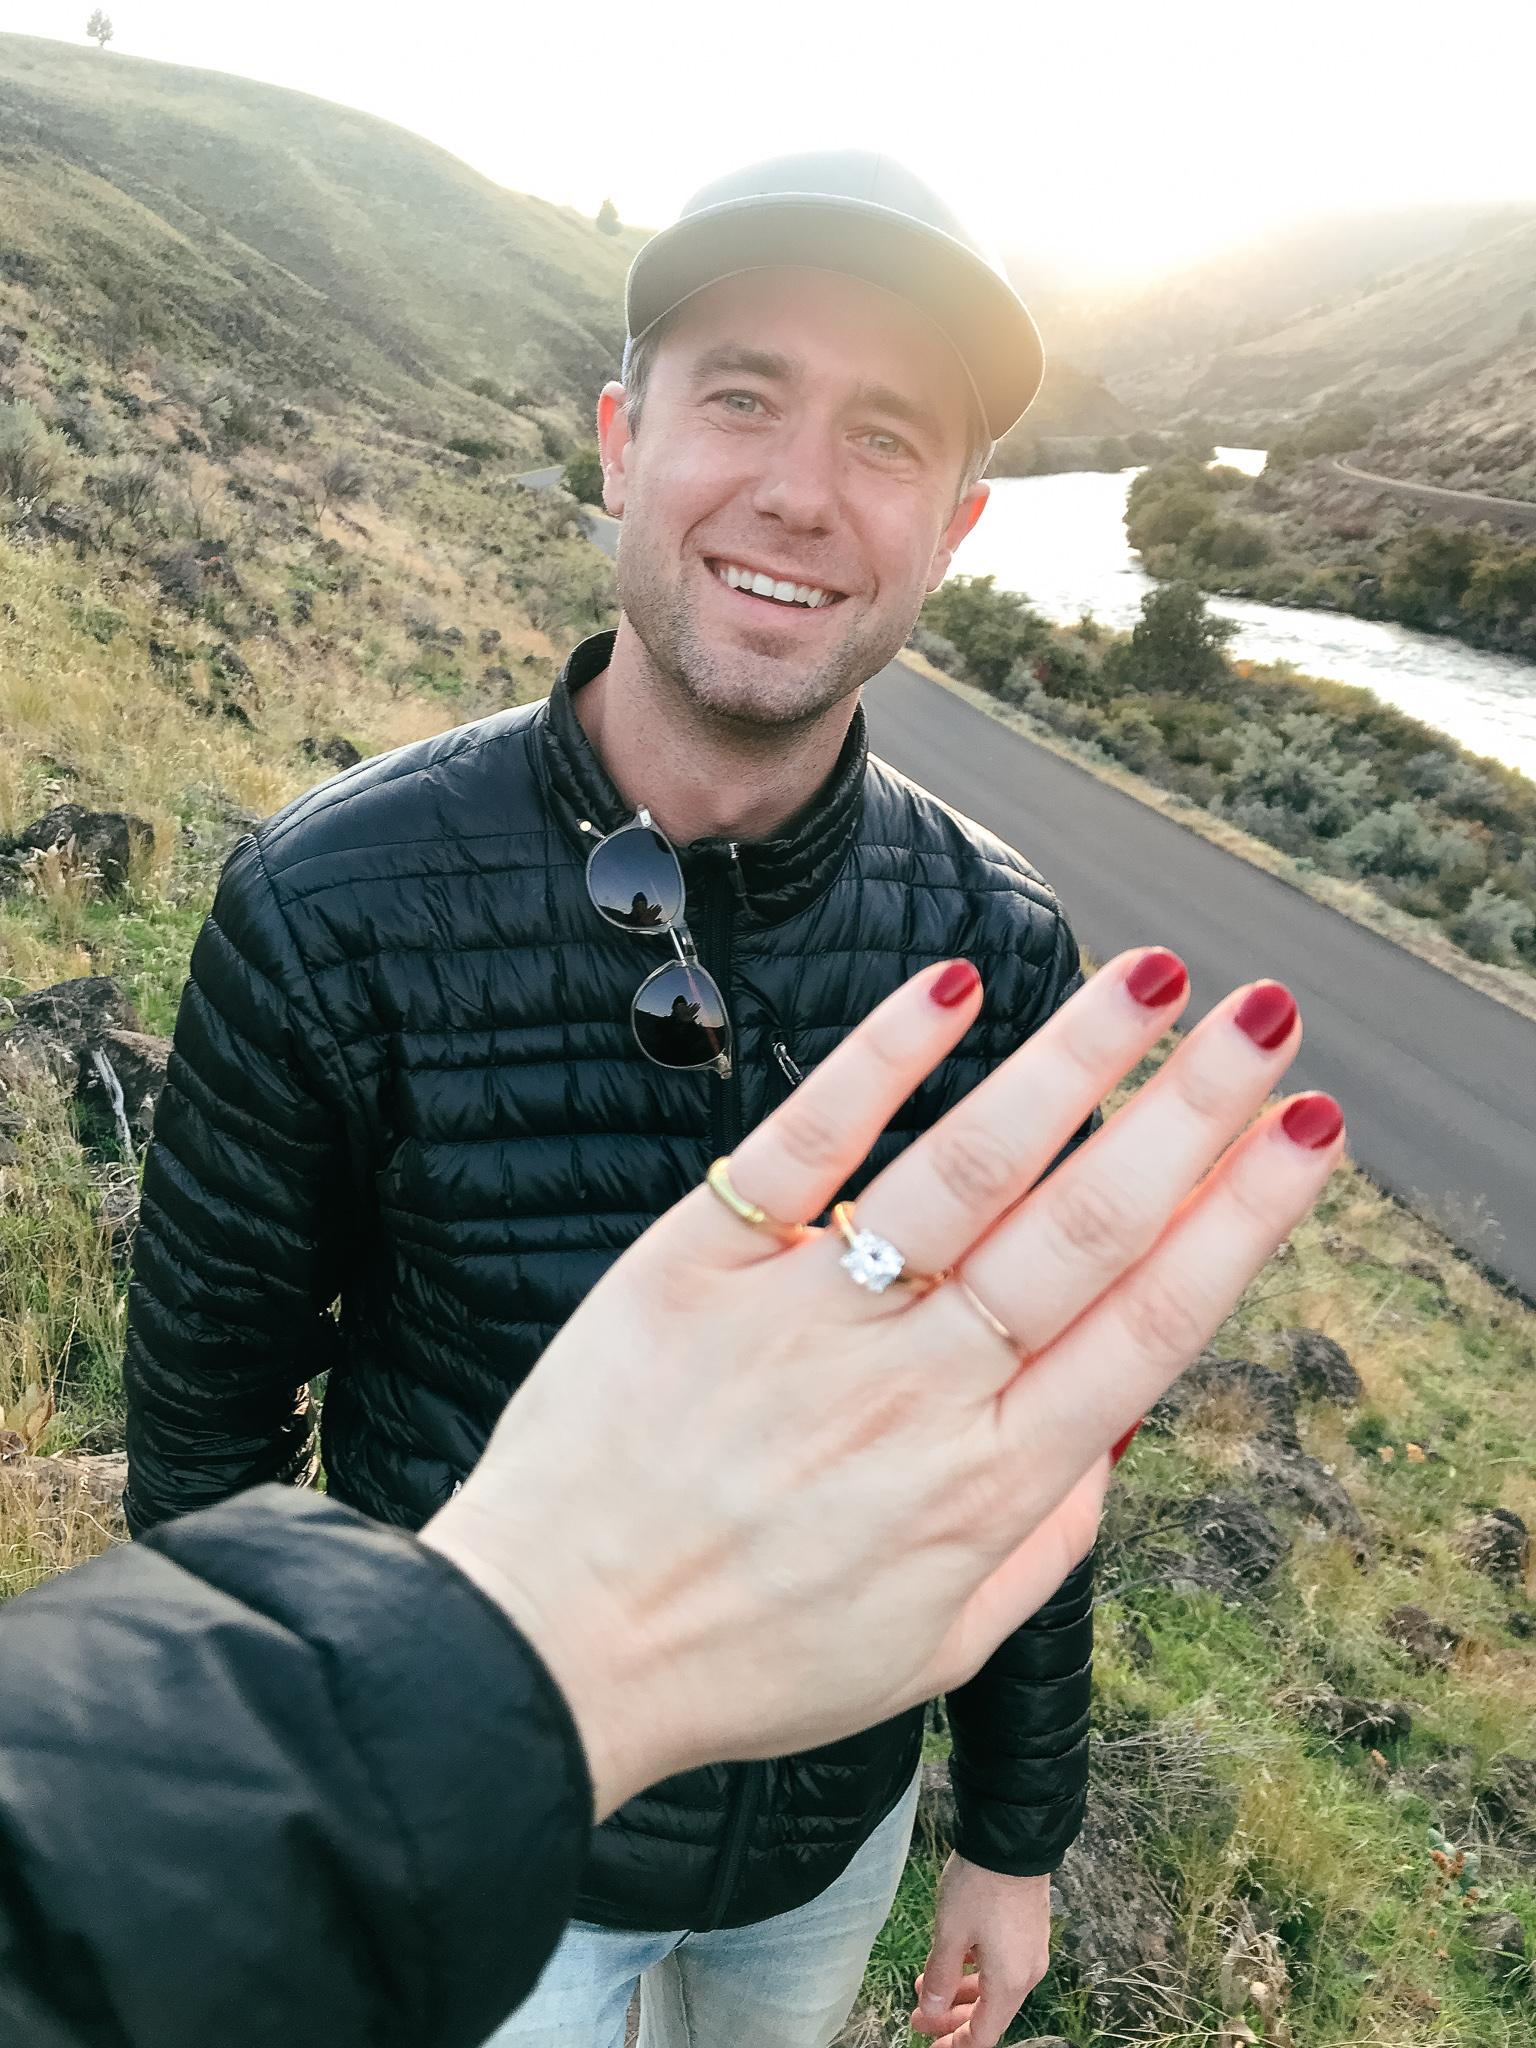 Engaged on the Deschutes River on October 11, 2019.